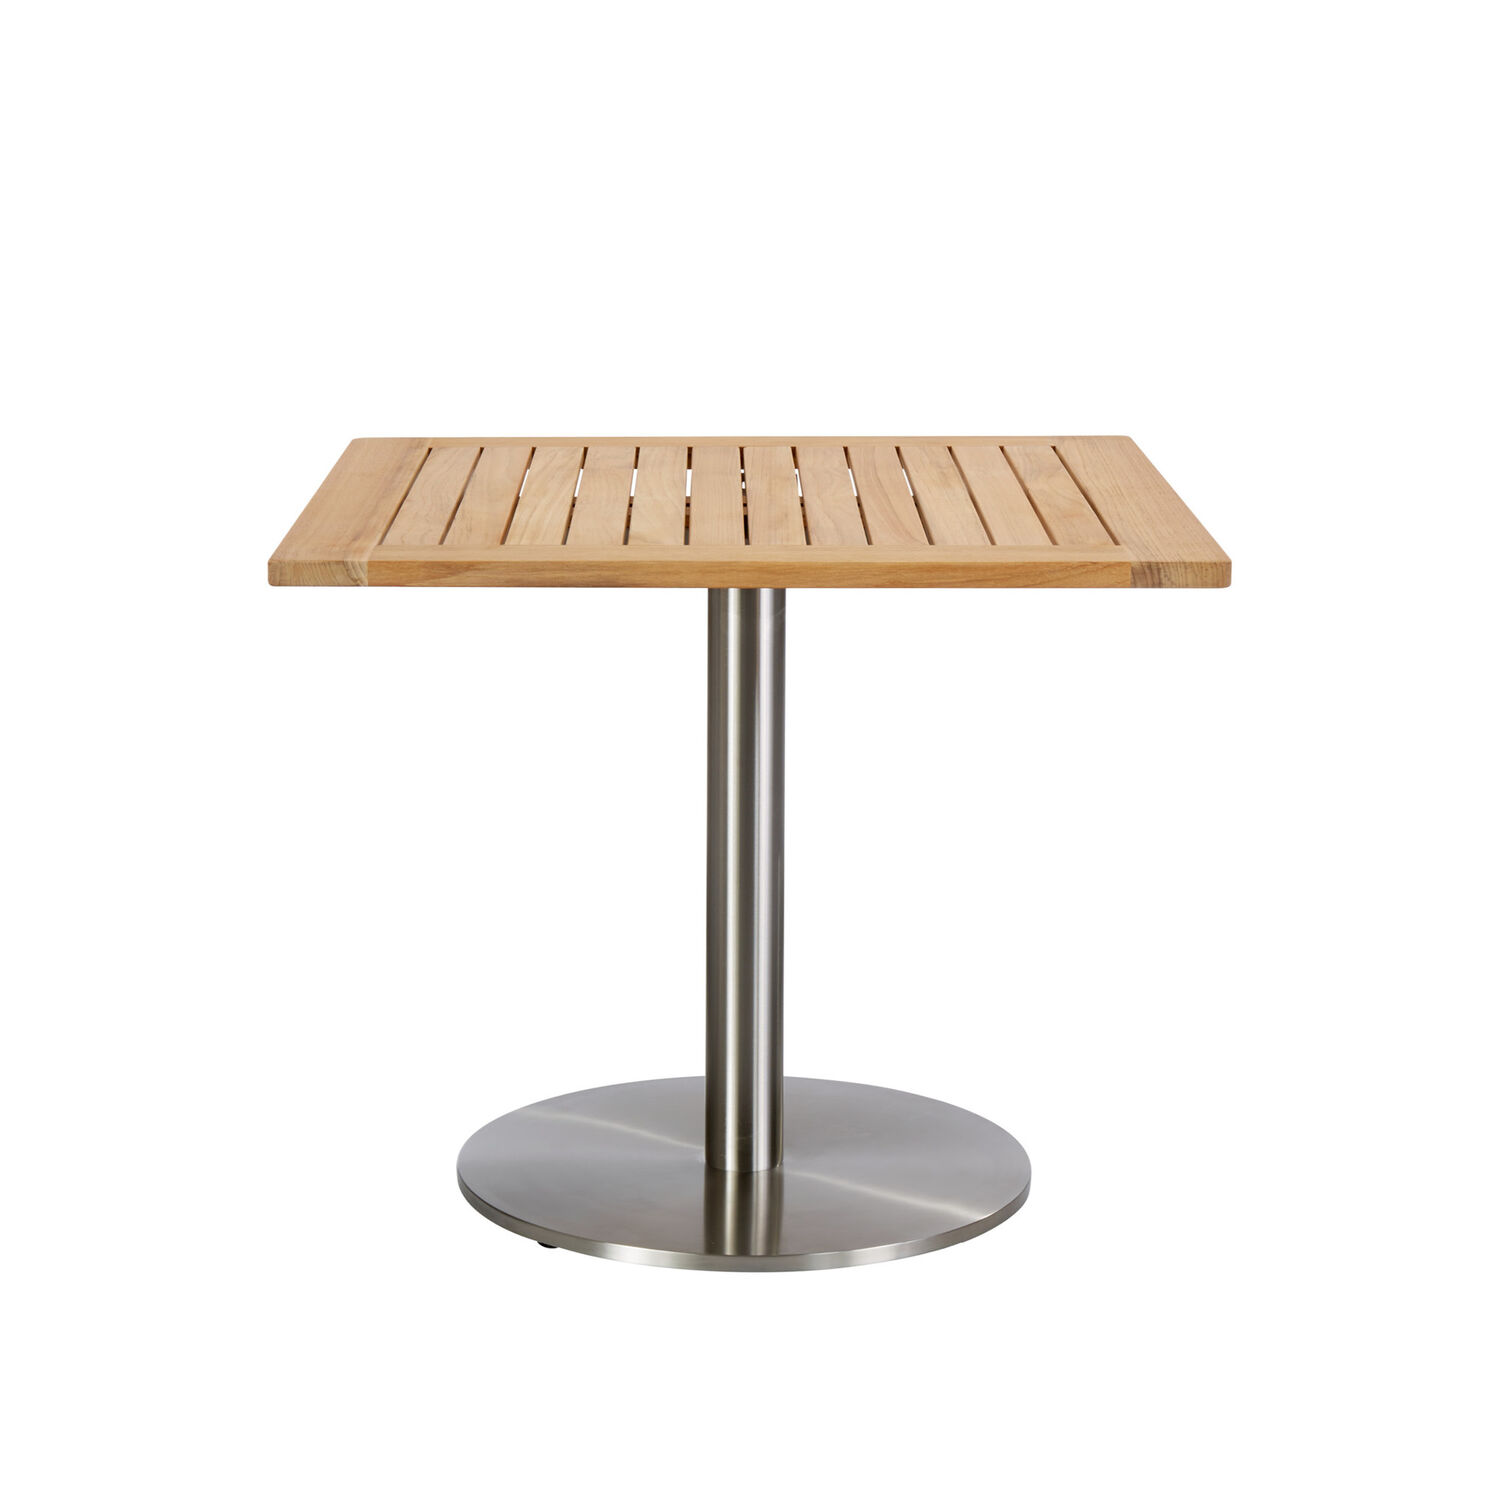 Teak Tisch 80x80 Ronda Single Pedestal Table Stainless Steel 80 X 80 With Teak Top